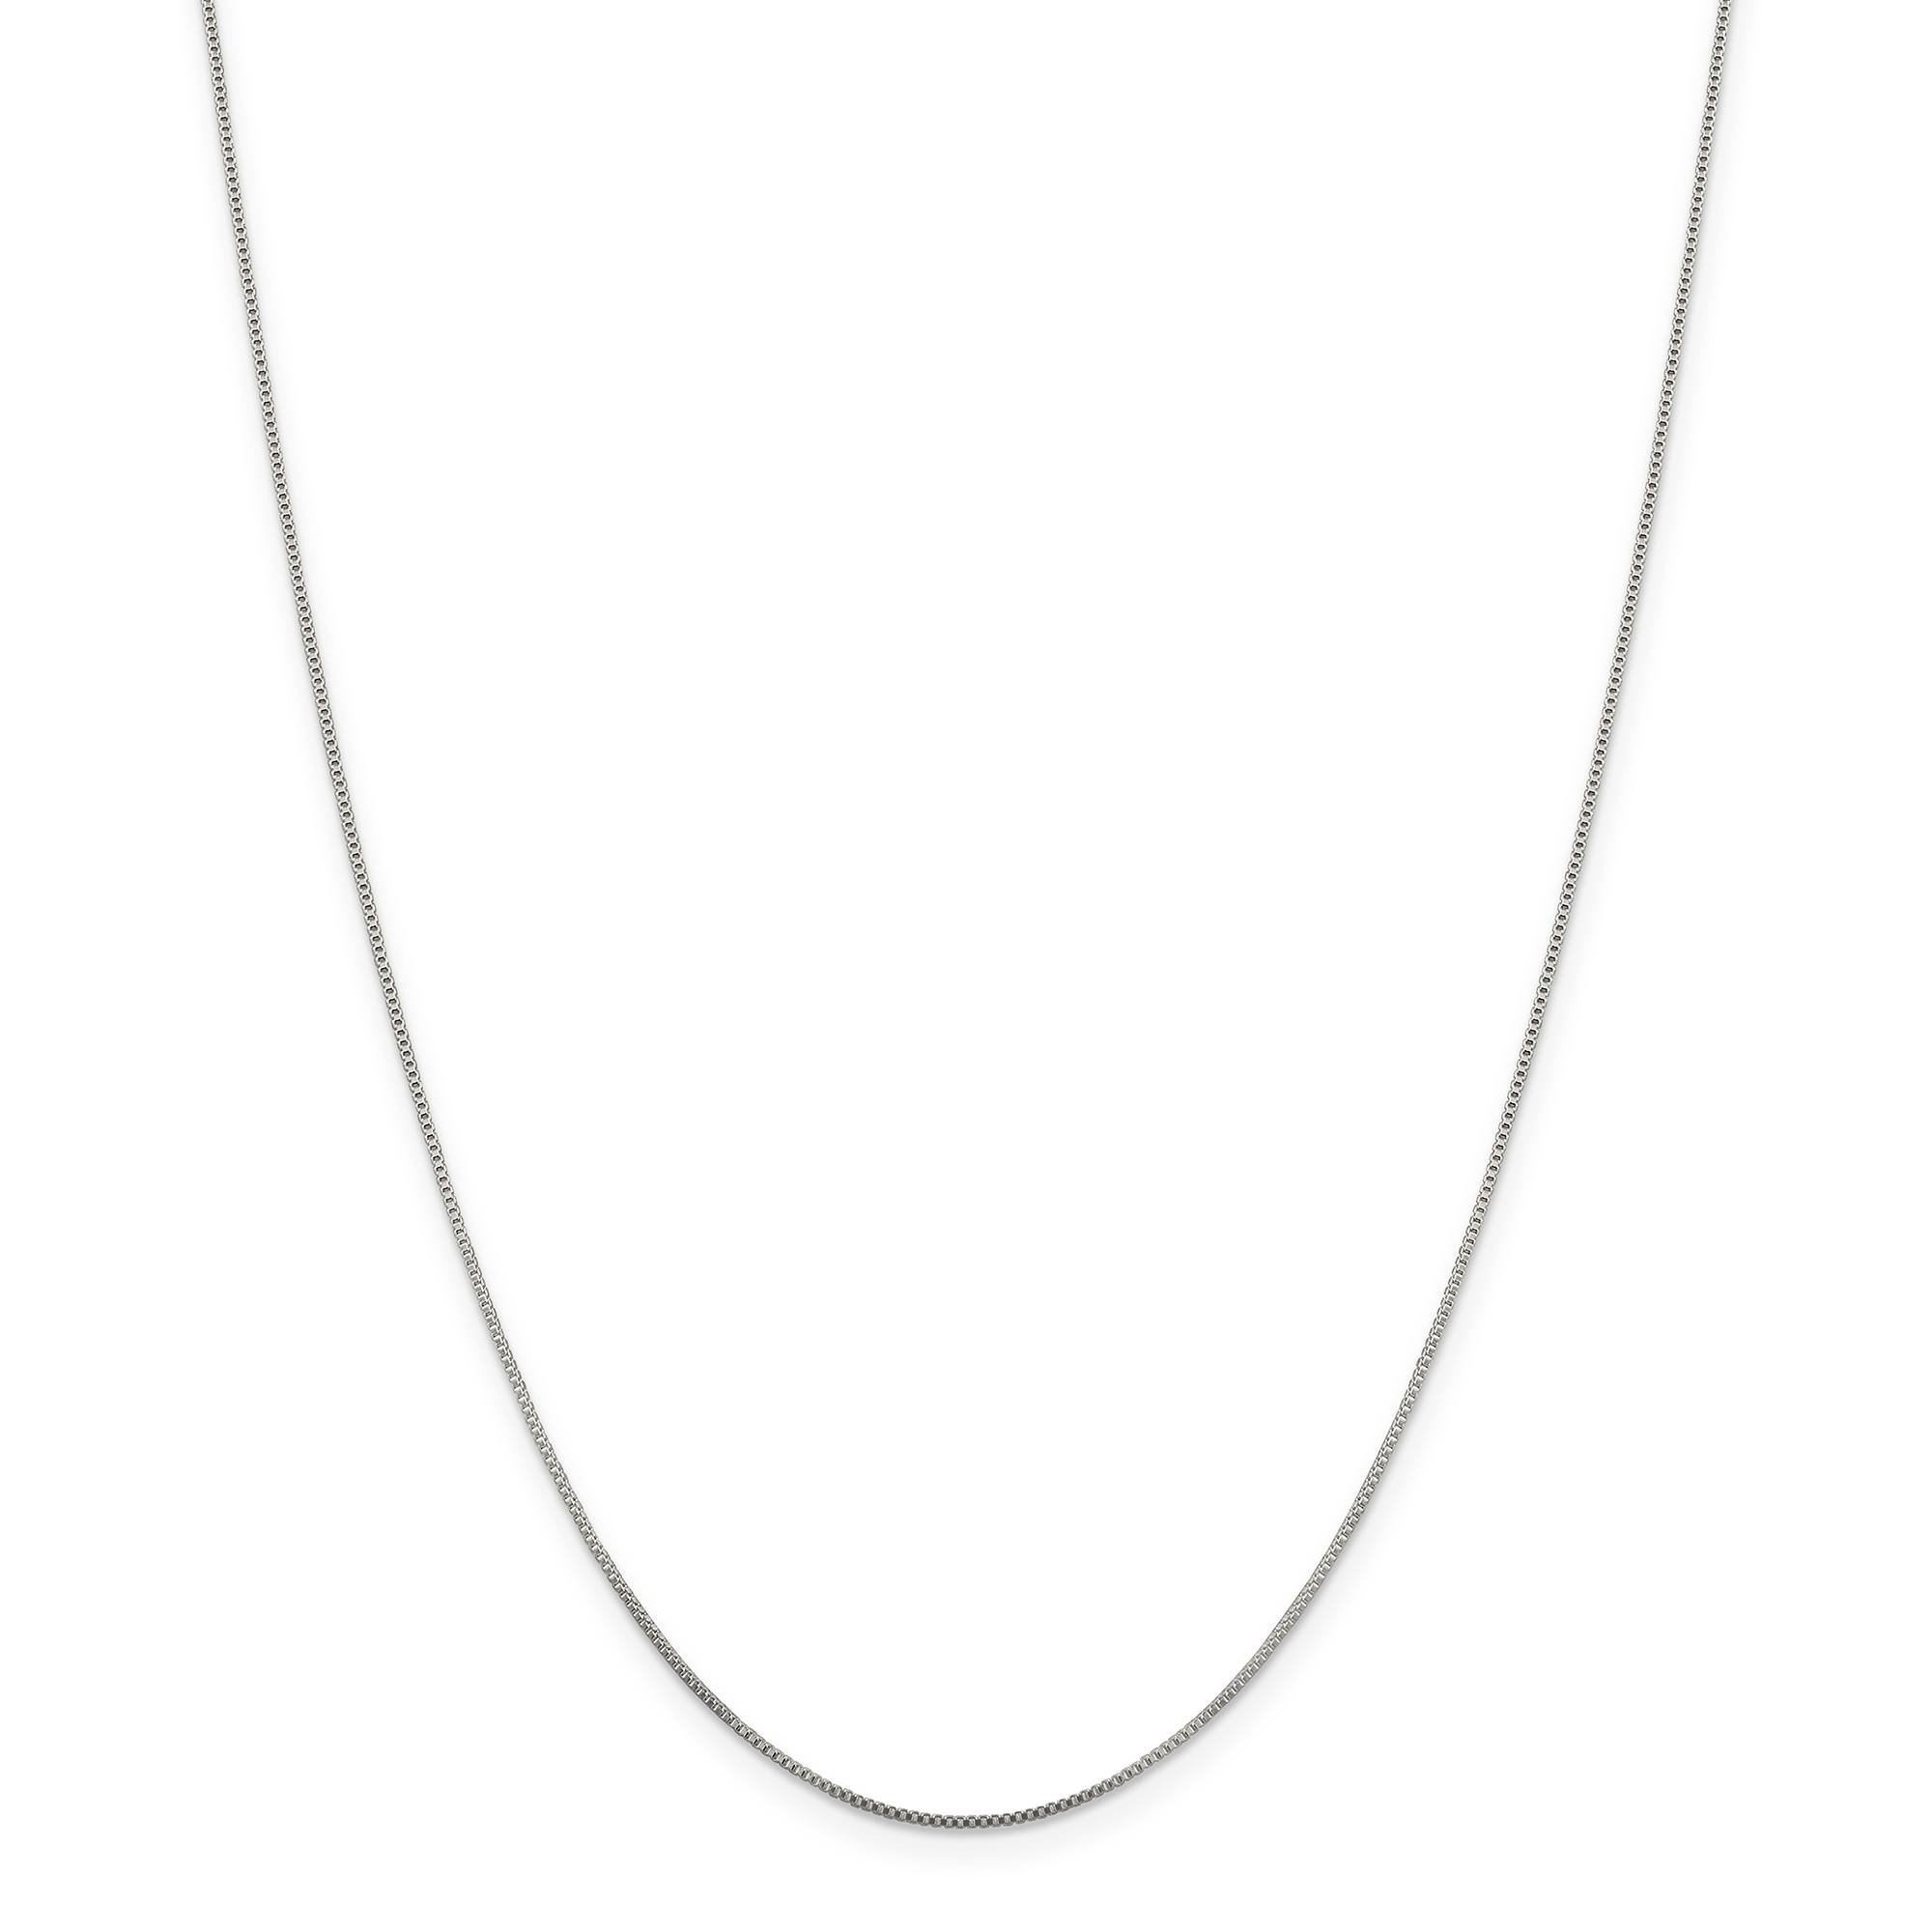 925 Sterling Silver .8mm Link Box Chain Necklace 24 Inch Pendant Charm Locket Fine Jewelry Gifts For Women For Her - image 3 of 3